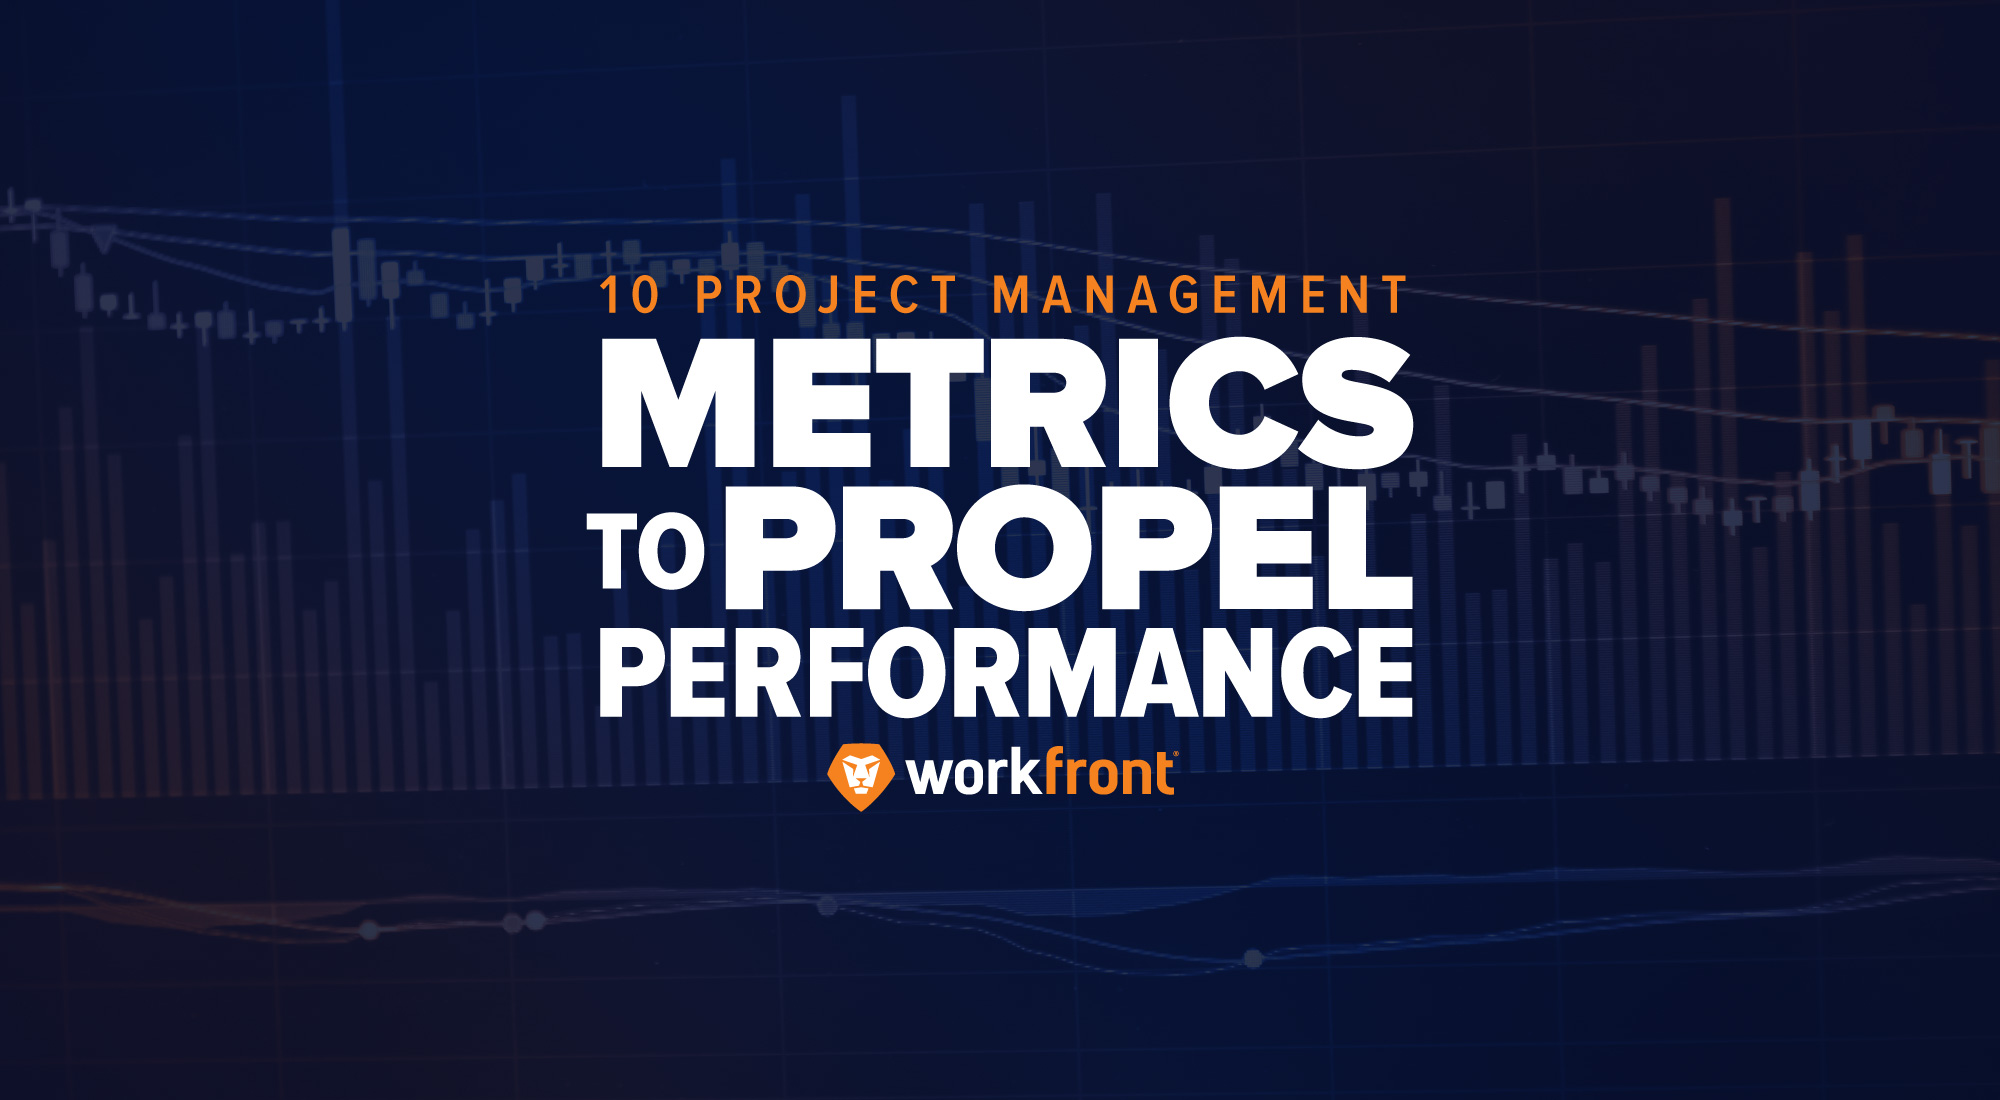 Improve Performance with 10 Project Management Metrics